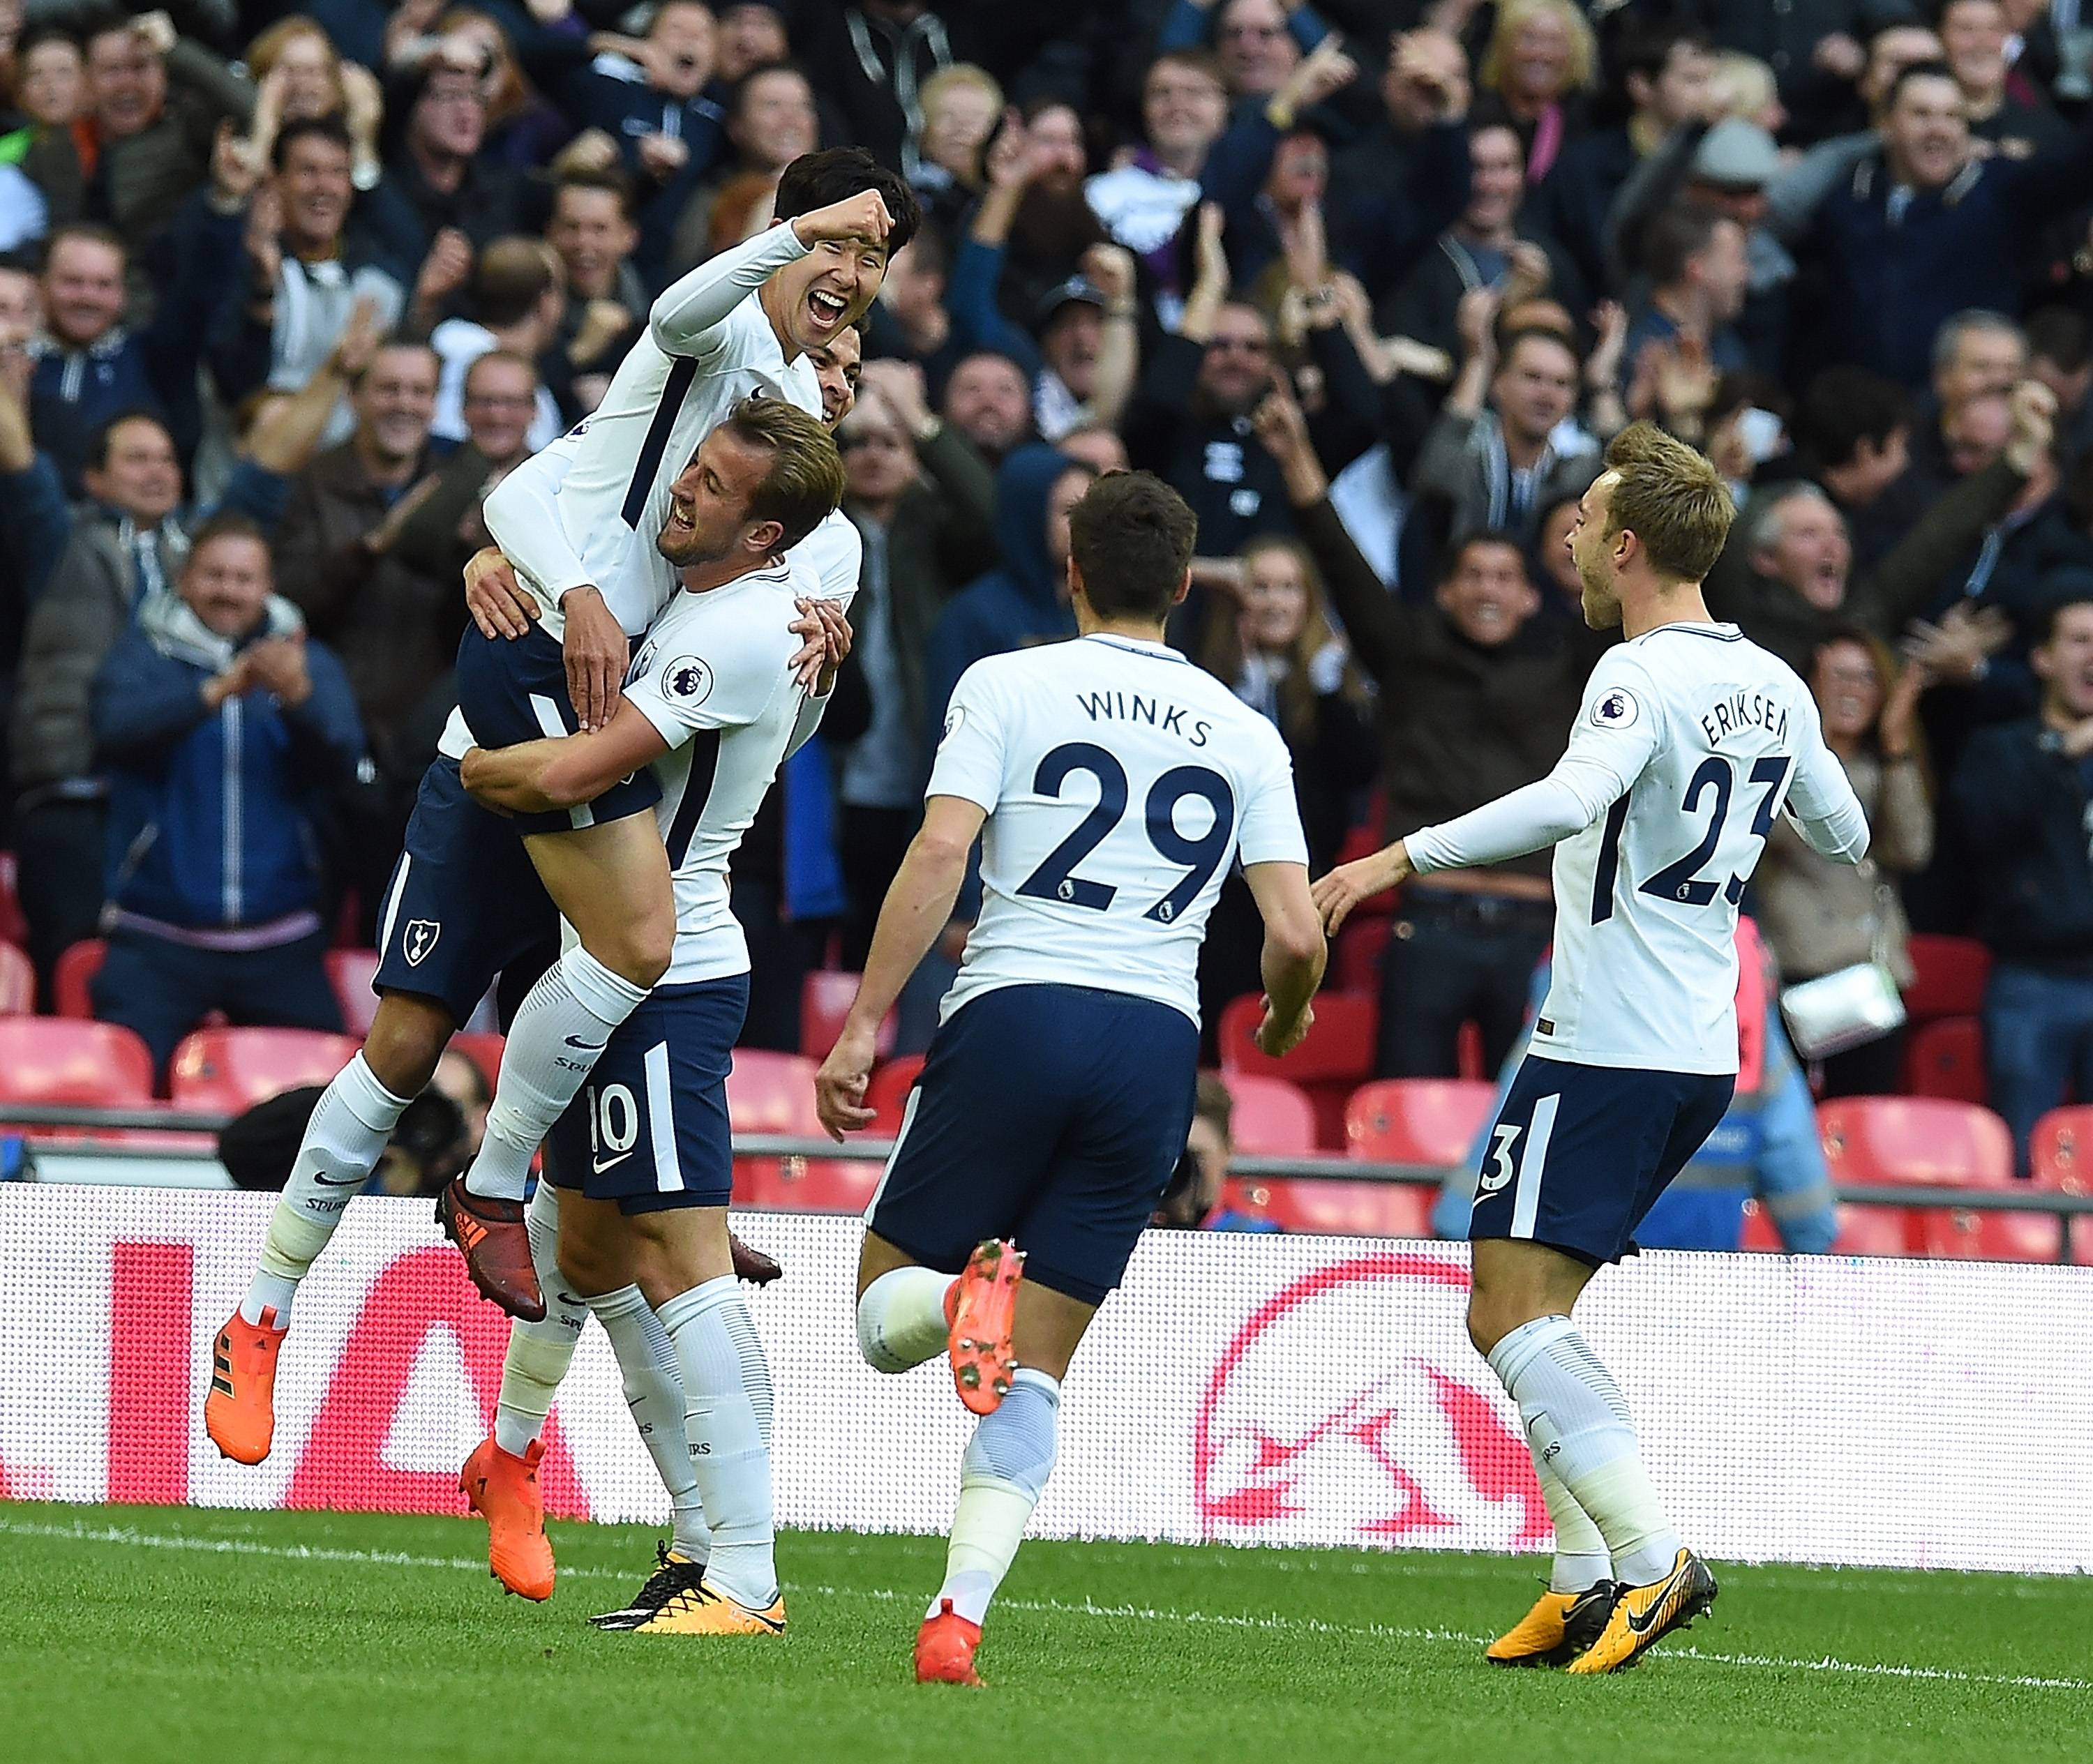 English media praise Son after first goal of Premiere League campaign